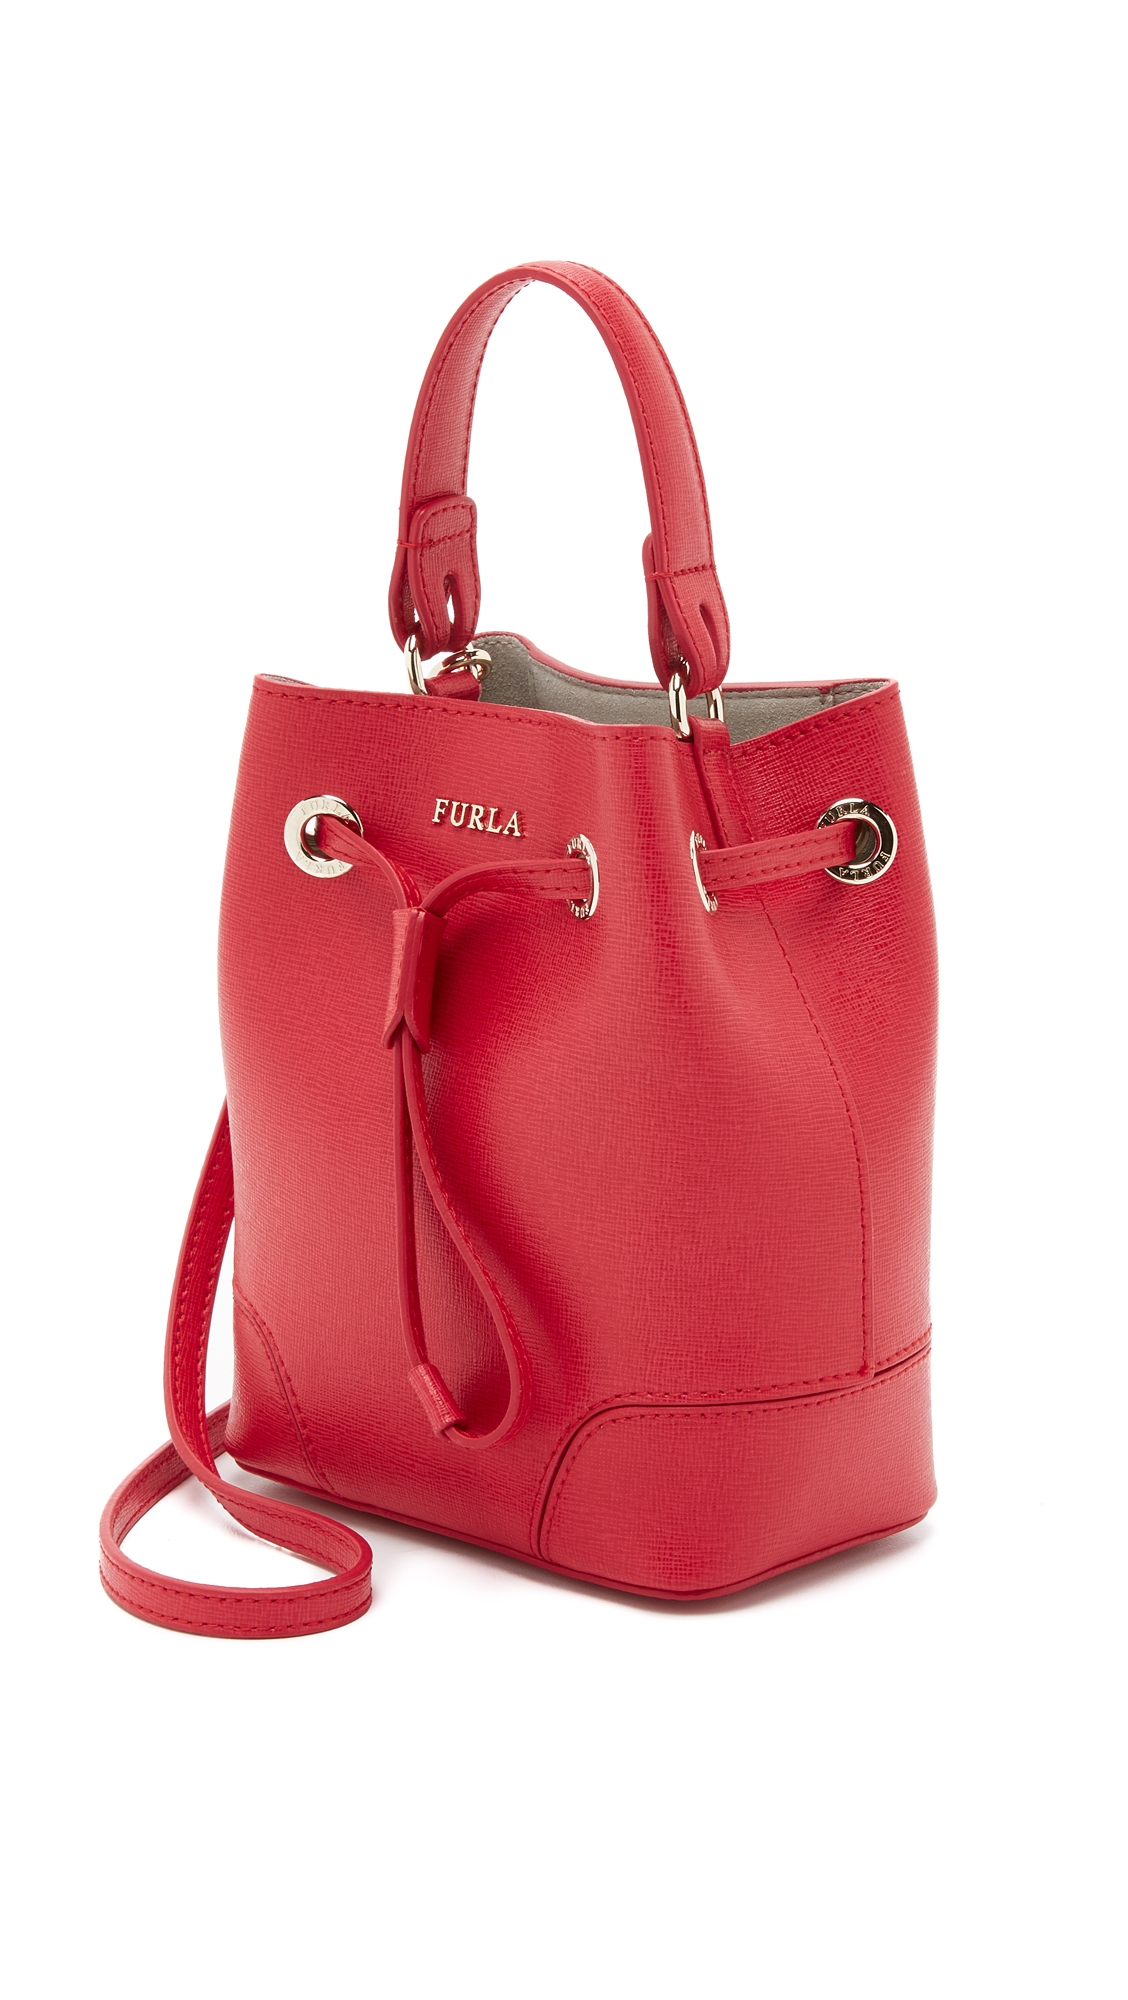 Furla Stacy Mini Drawstring Bucket Bag in Red | Lyst